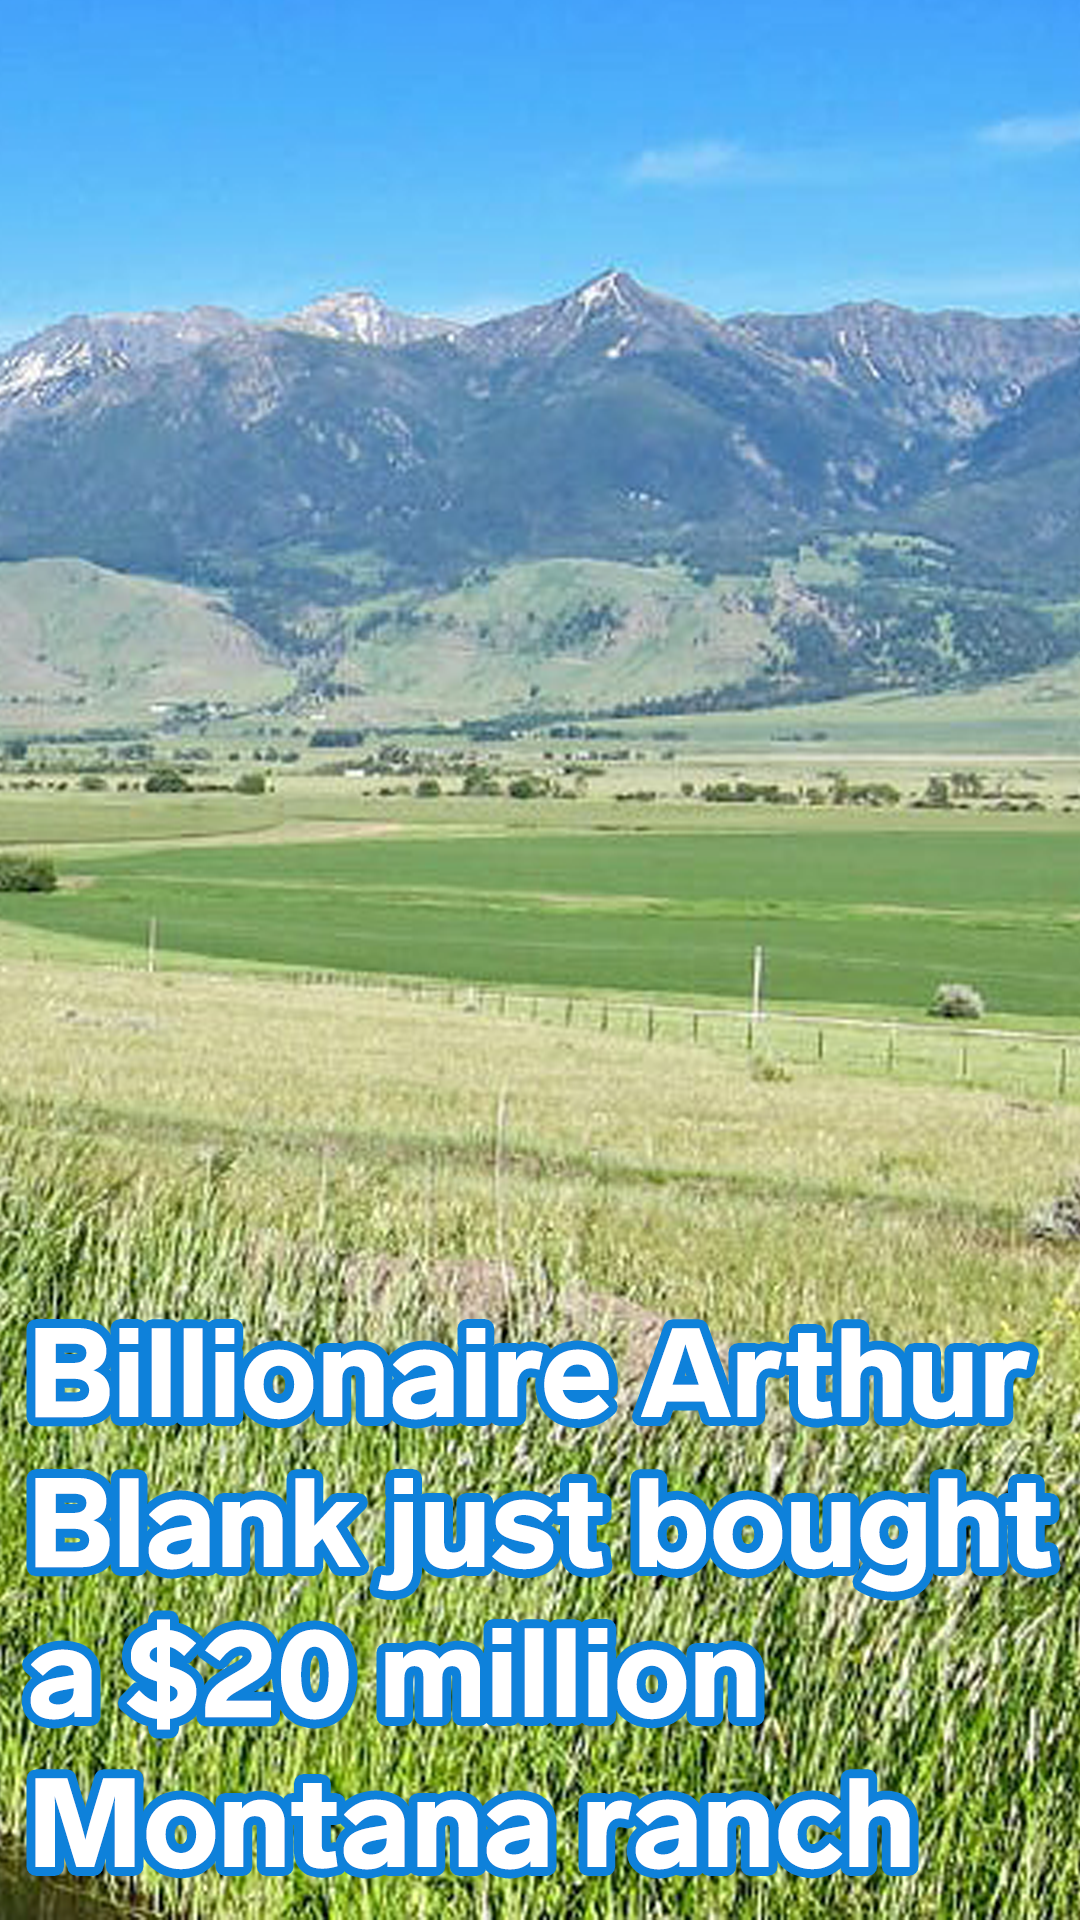 Arthur Blank Billionaire Cofounder Of Home Depot And Owner Of The Nfl S Atlanta Falcons Just Bought A 20 Million Montana Ranch Take A Look At The 9 300 Acre Montana Ranch Montana Ranch